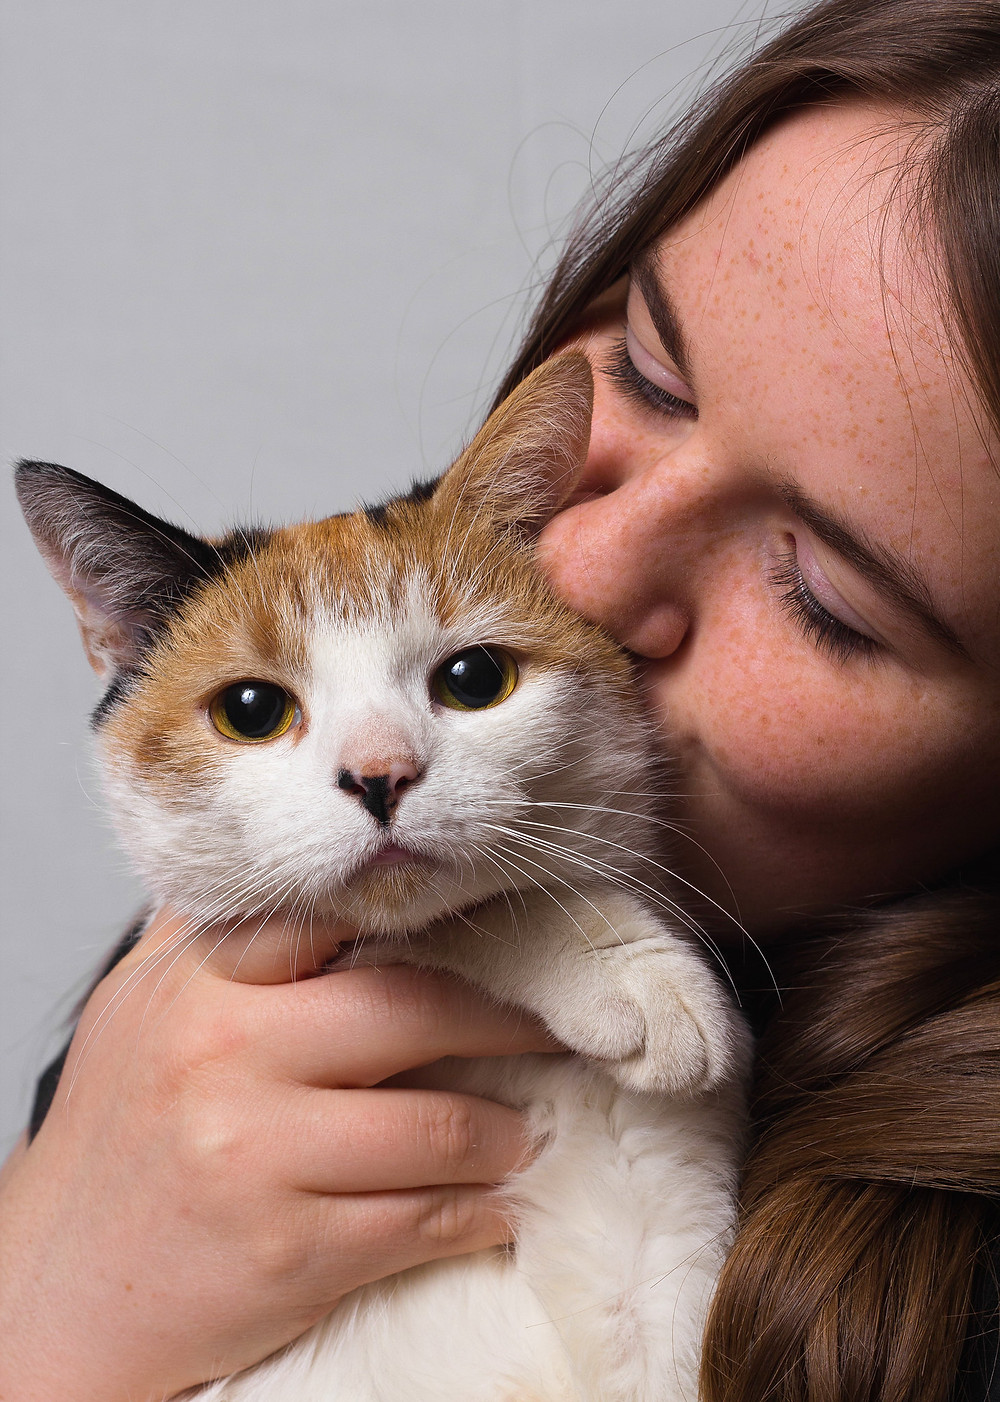 Woman Hugging a Ginger and White Cat